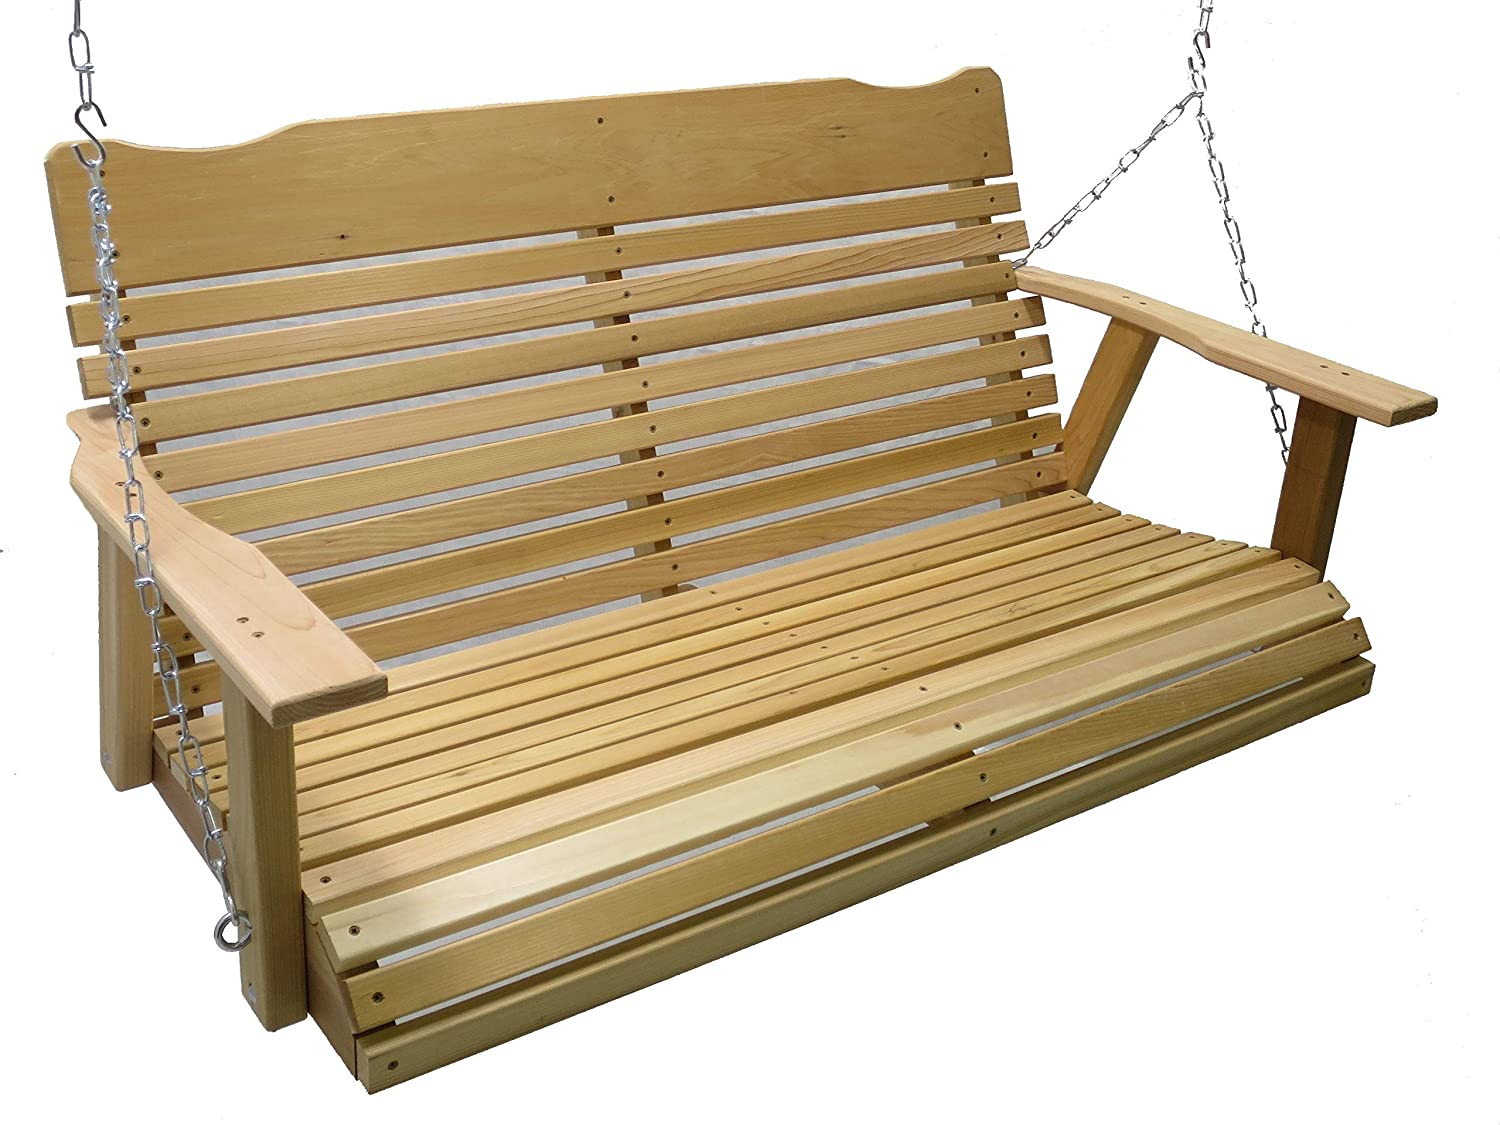 Kilmer Creek Oakland Mall New mail order 4 Foot Natural Cedar Spring Chain with Porch Swing